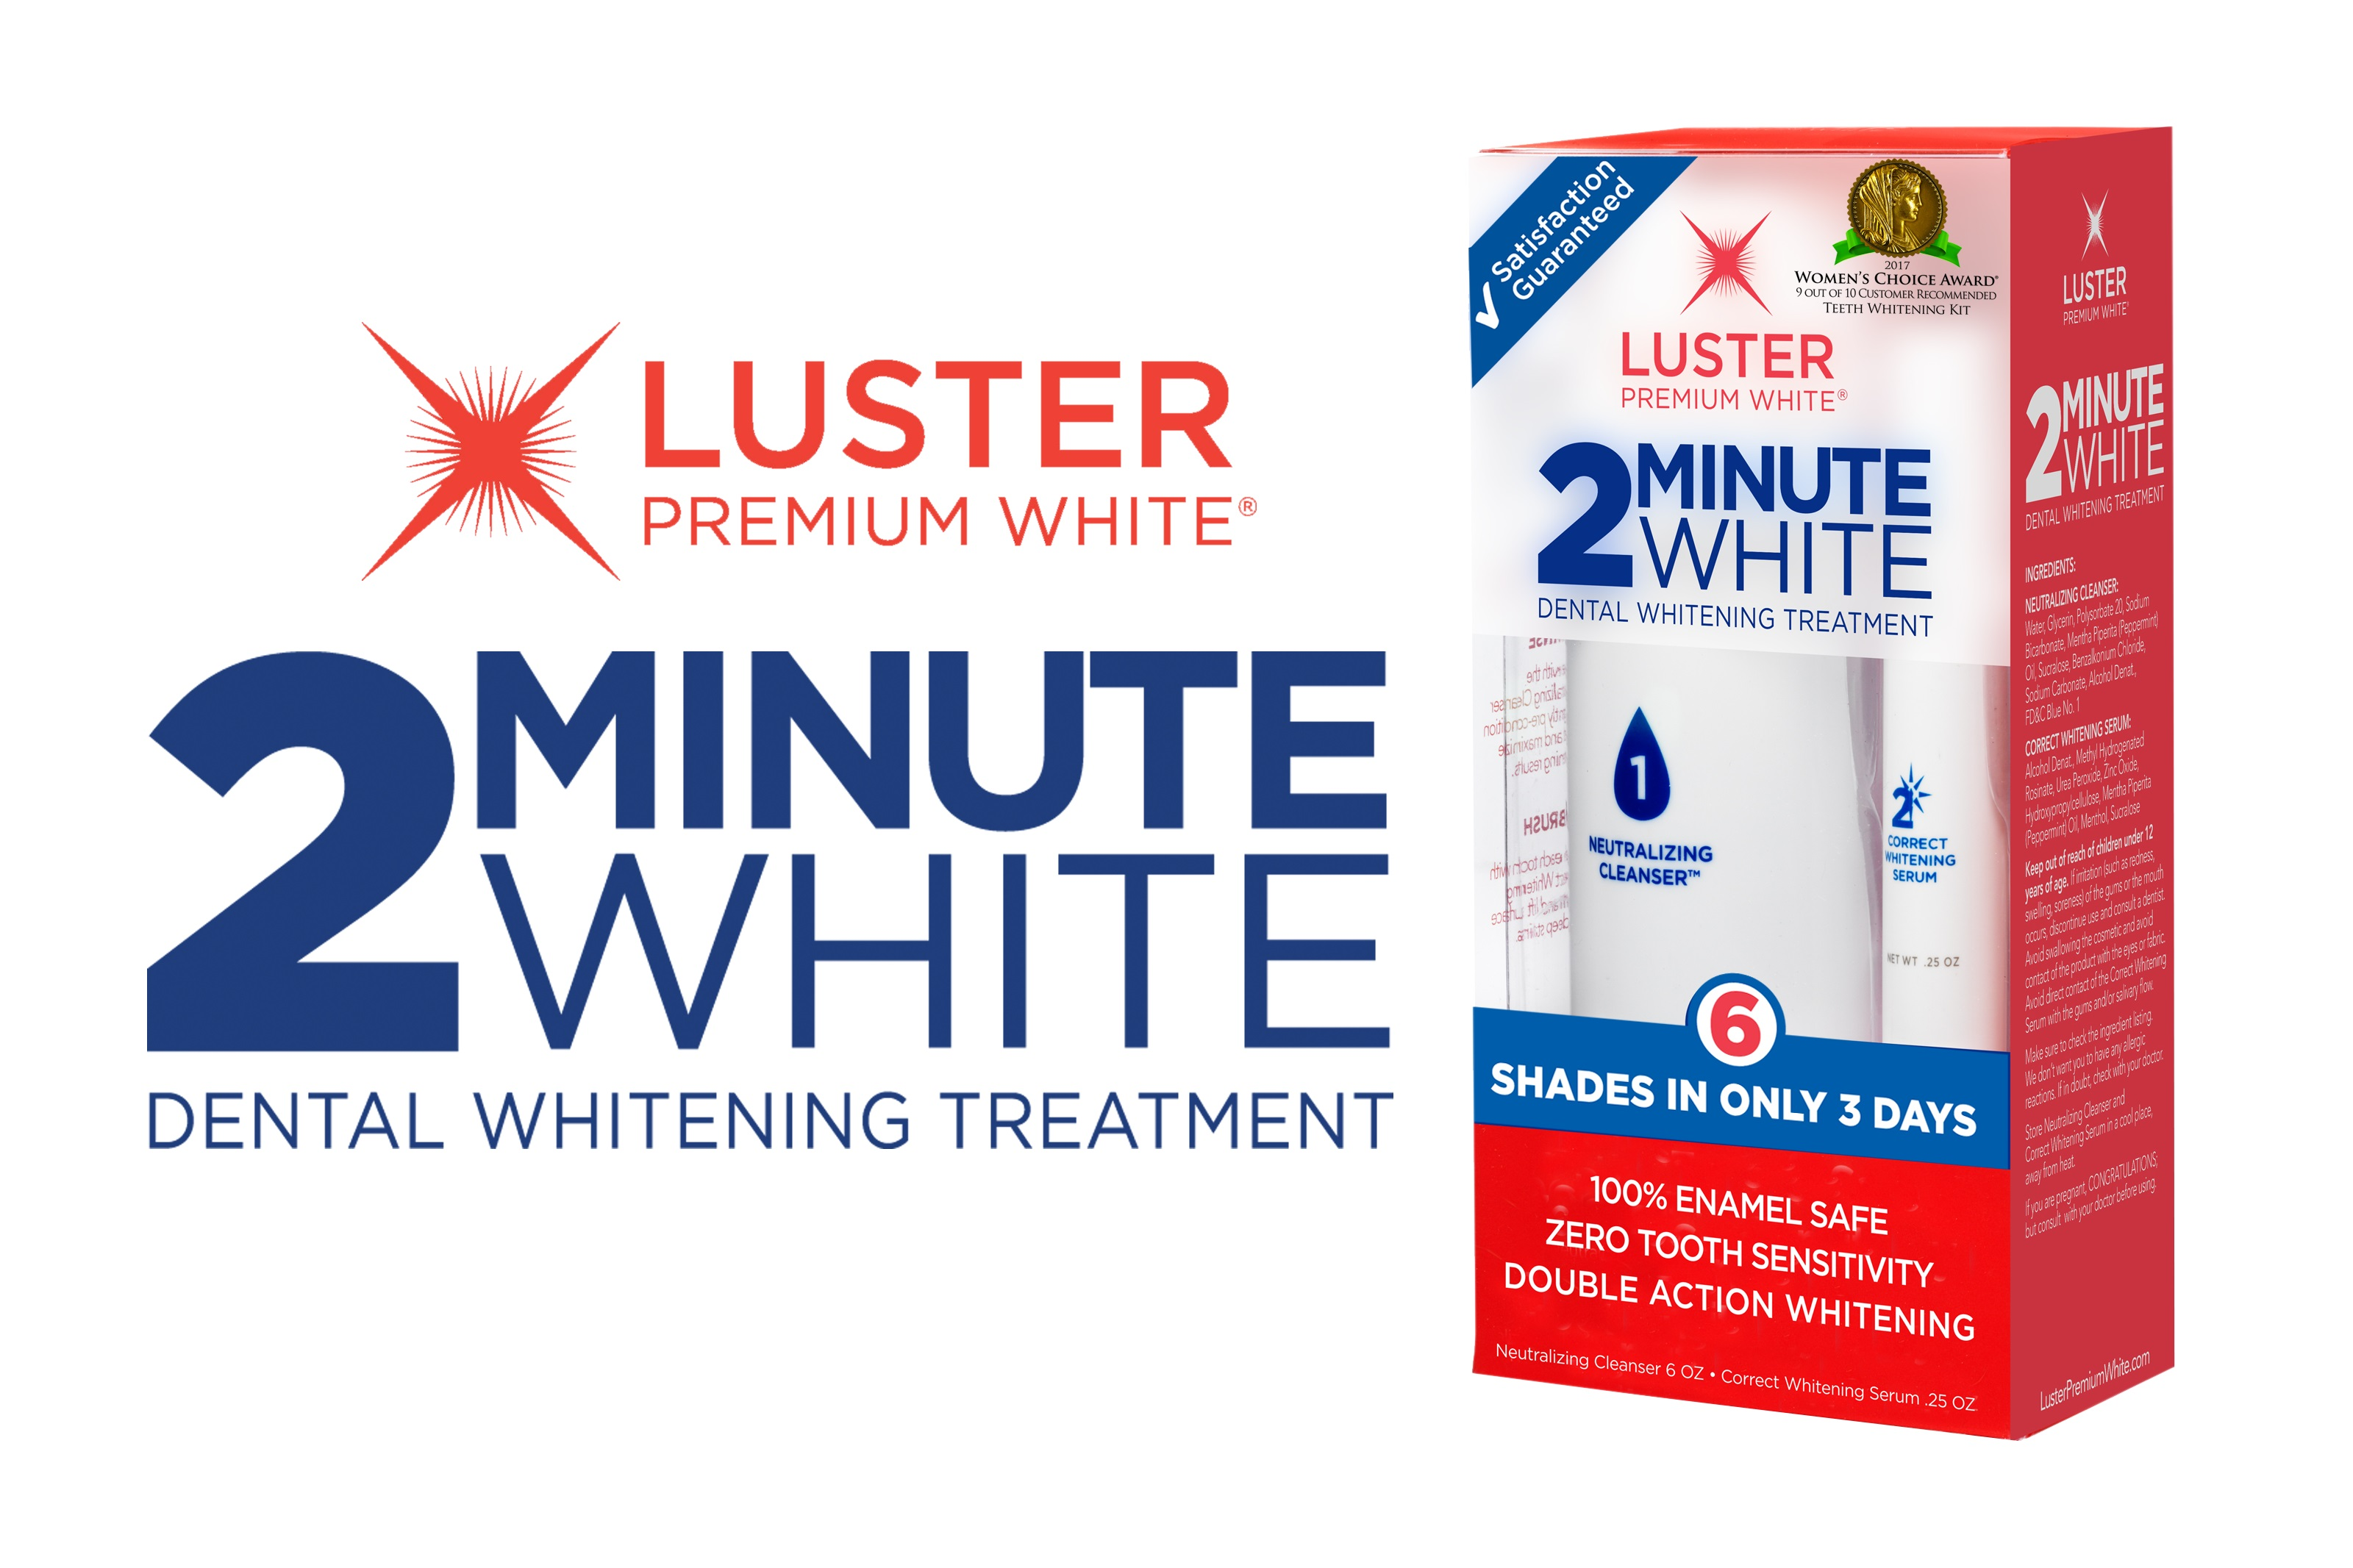 Luster Teeth Whitening Review Lovetoknow